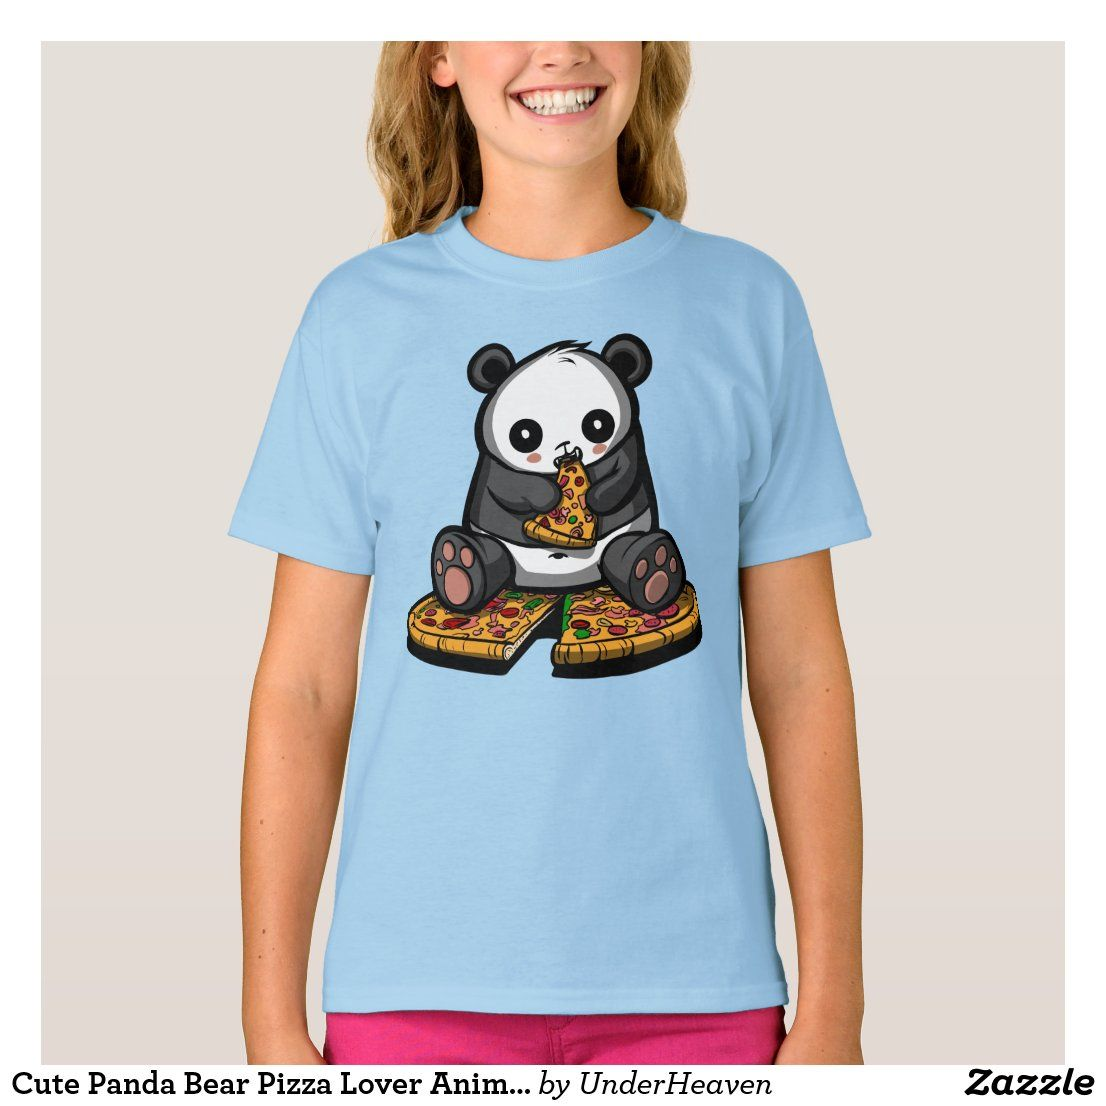 Cute Panda Bear Pizza Lover Animal T Shirt Zazzle Com In 2021 Cute Panda Animal Tshirt Panda Bear